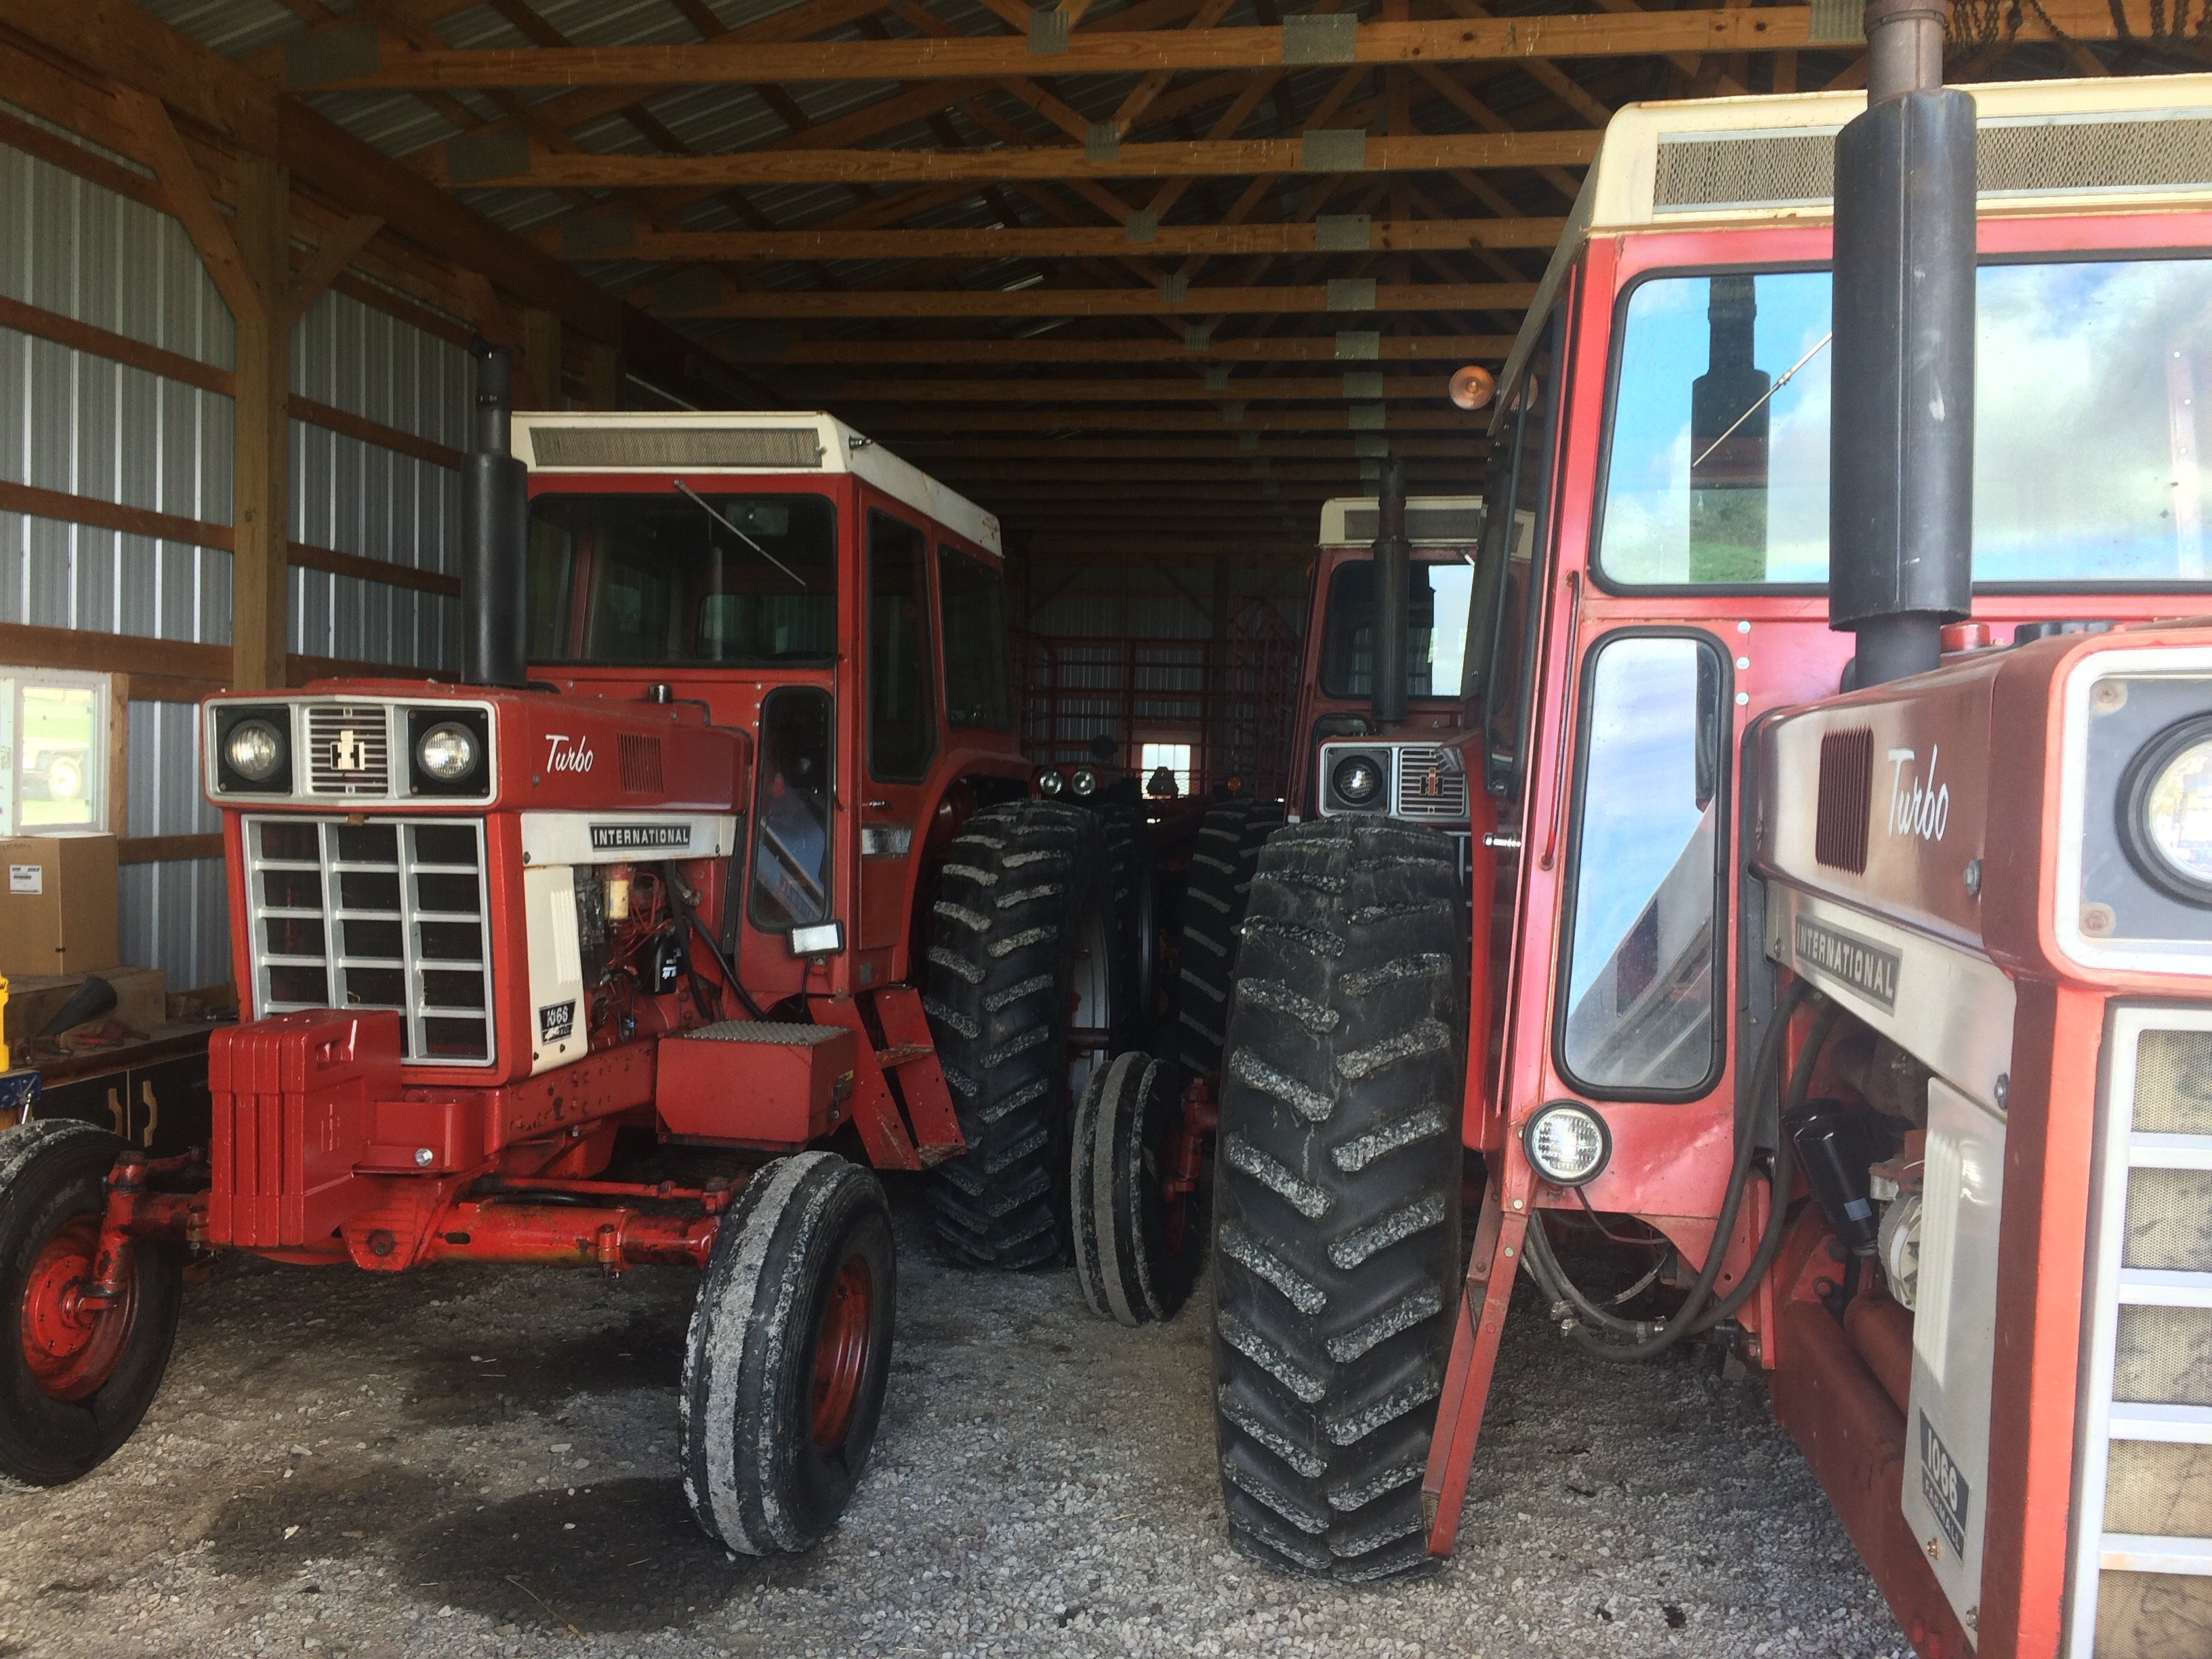 806 Ih Tractor Wiring Diagram As Well As Farmall Super C Wiring